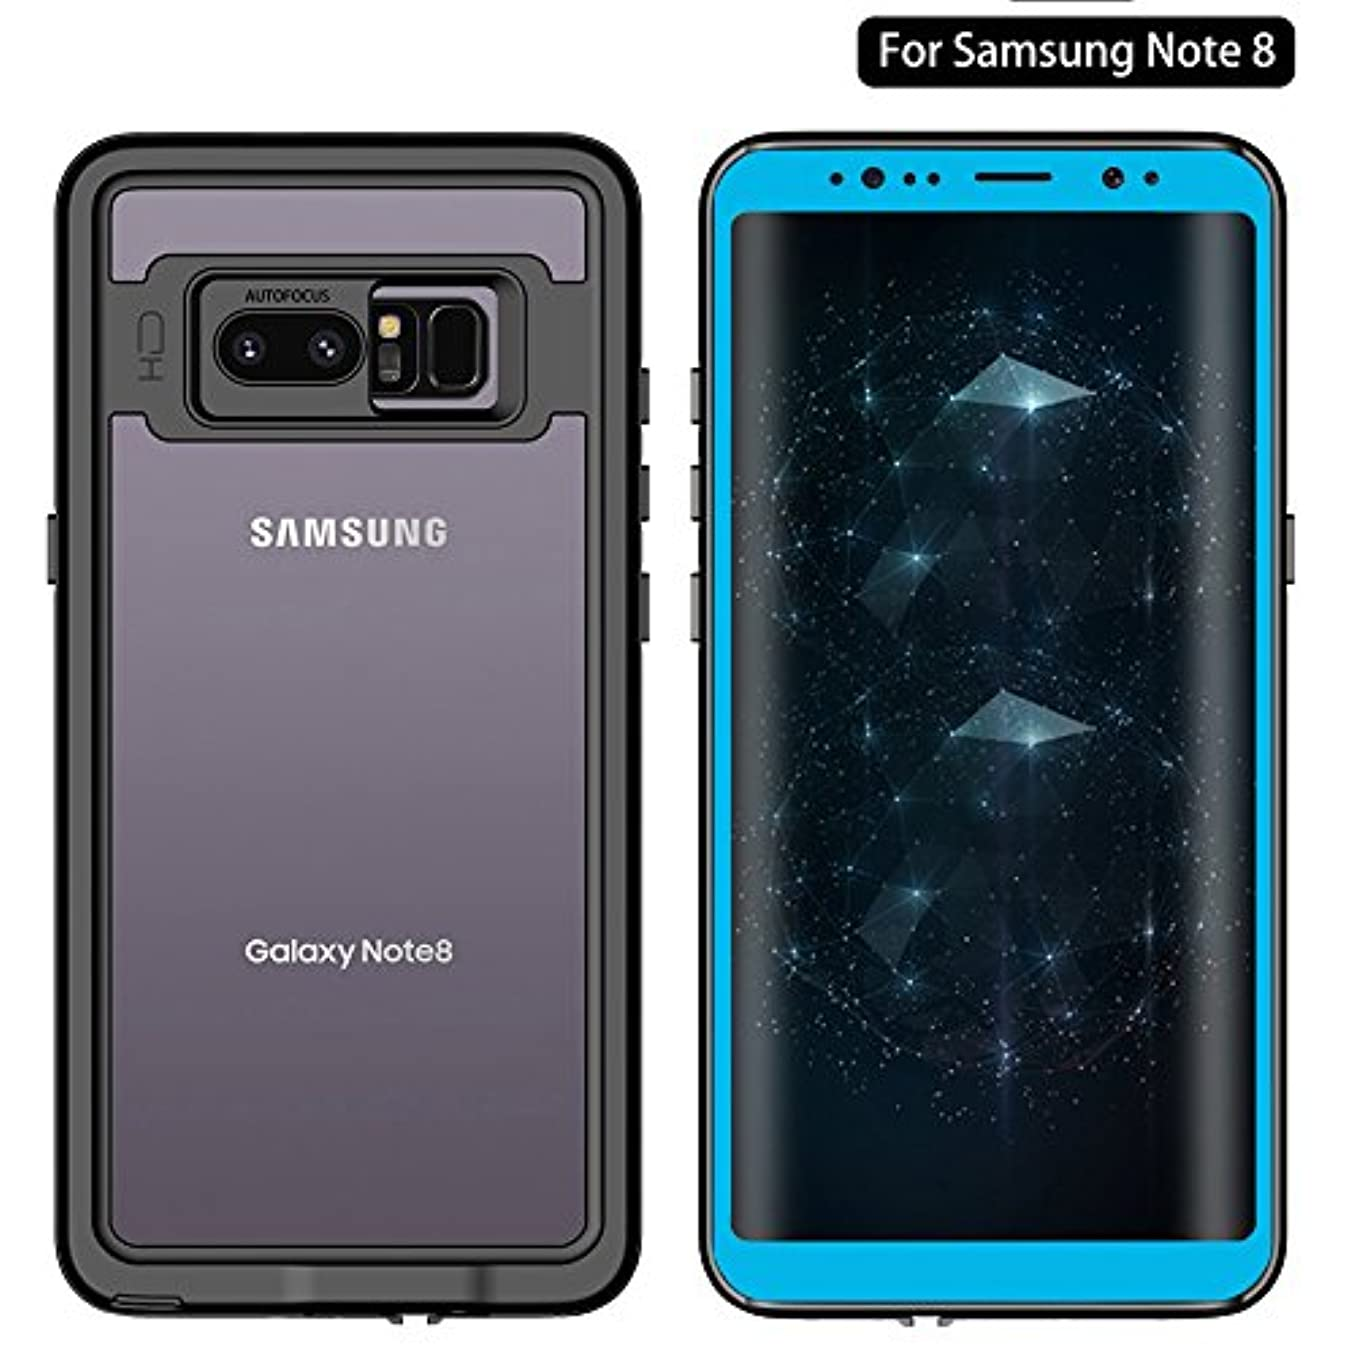 Galaxy Note 8 Waterproof Case, Dooge Transparent Pattern Shockproof Dirtproof Snowproof Rain Proof,Heavy Duty Full Protection Case Cover Rugged IP68 Certified Waterproof Case for Samsung Galaxy Note 8